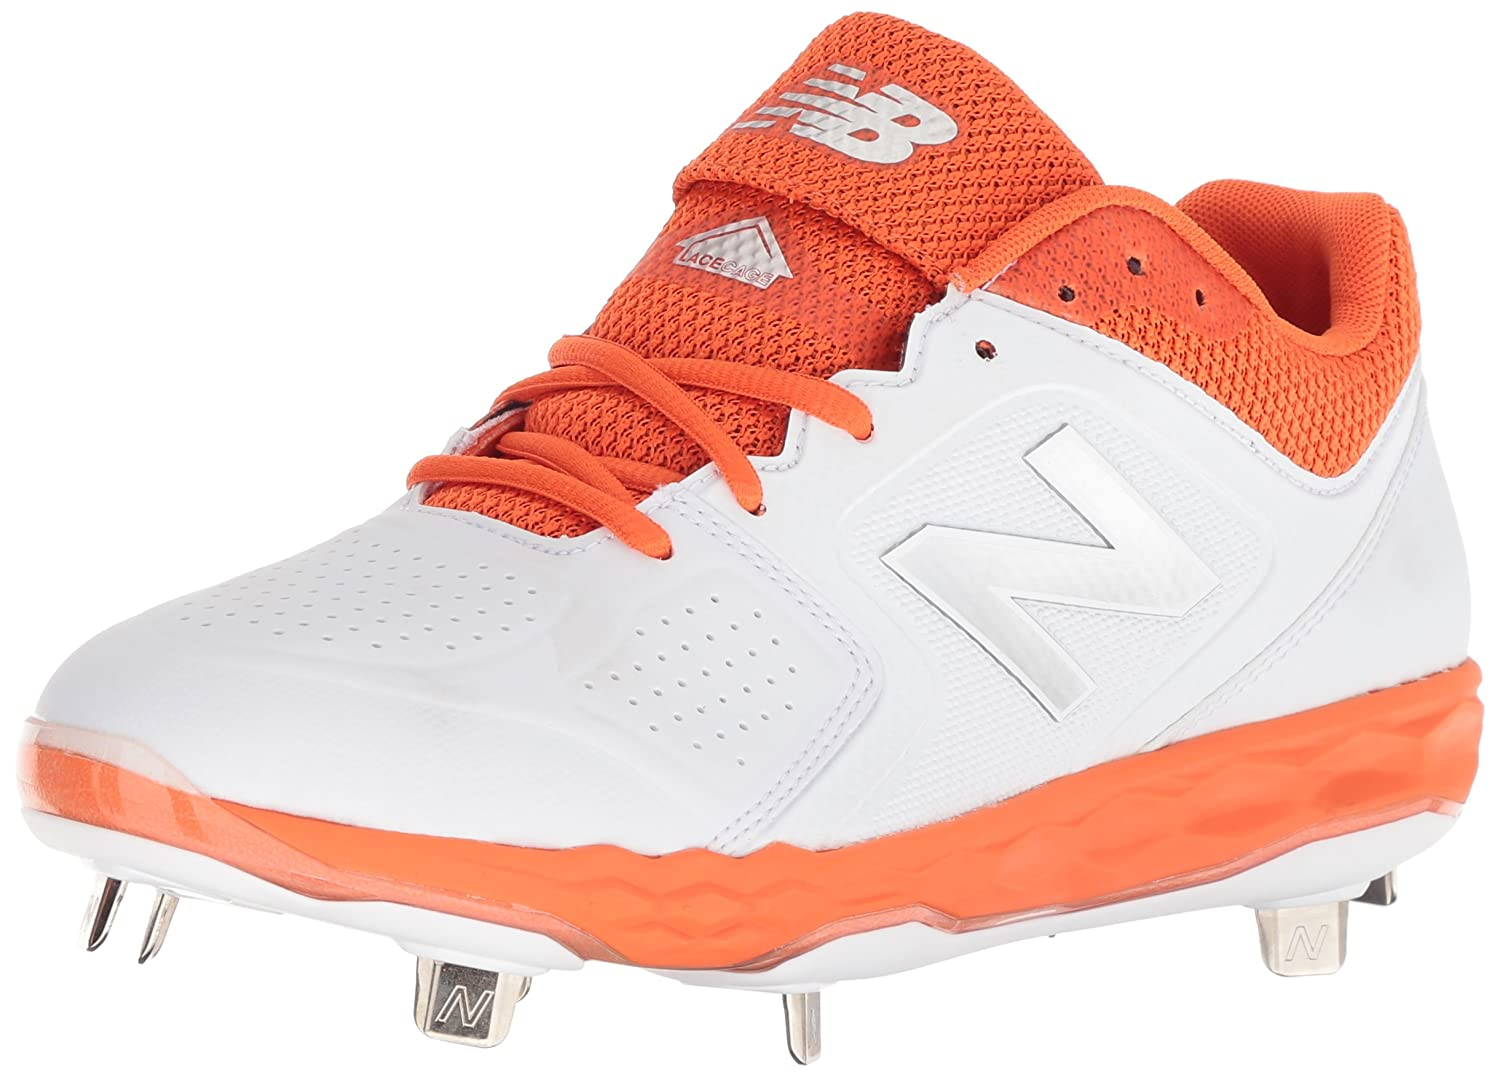 New Balance Women's Velo V1 Metal Softball Shoe B075R79CYM 12 D US|Orange/White